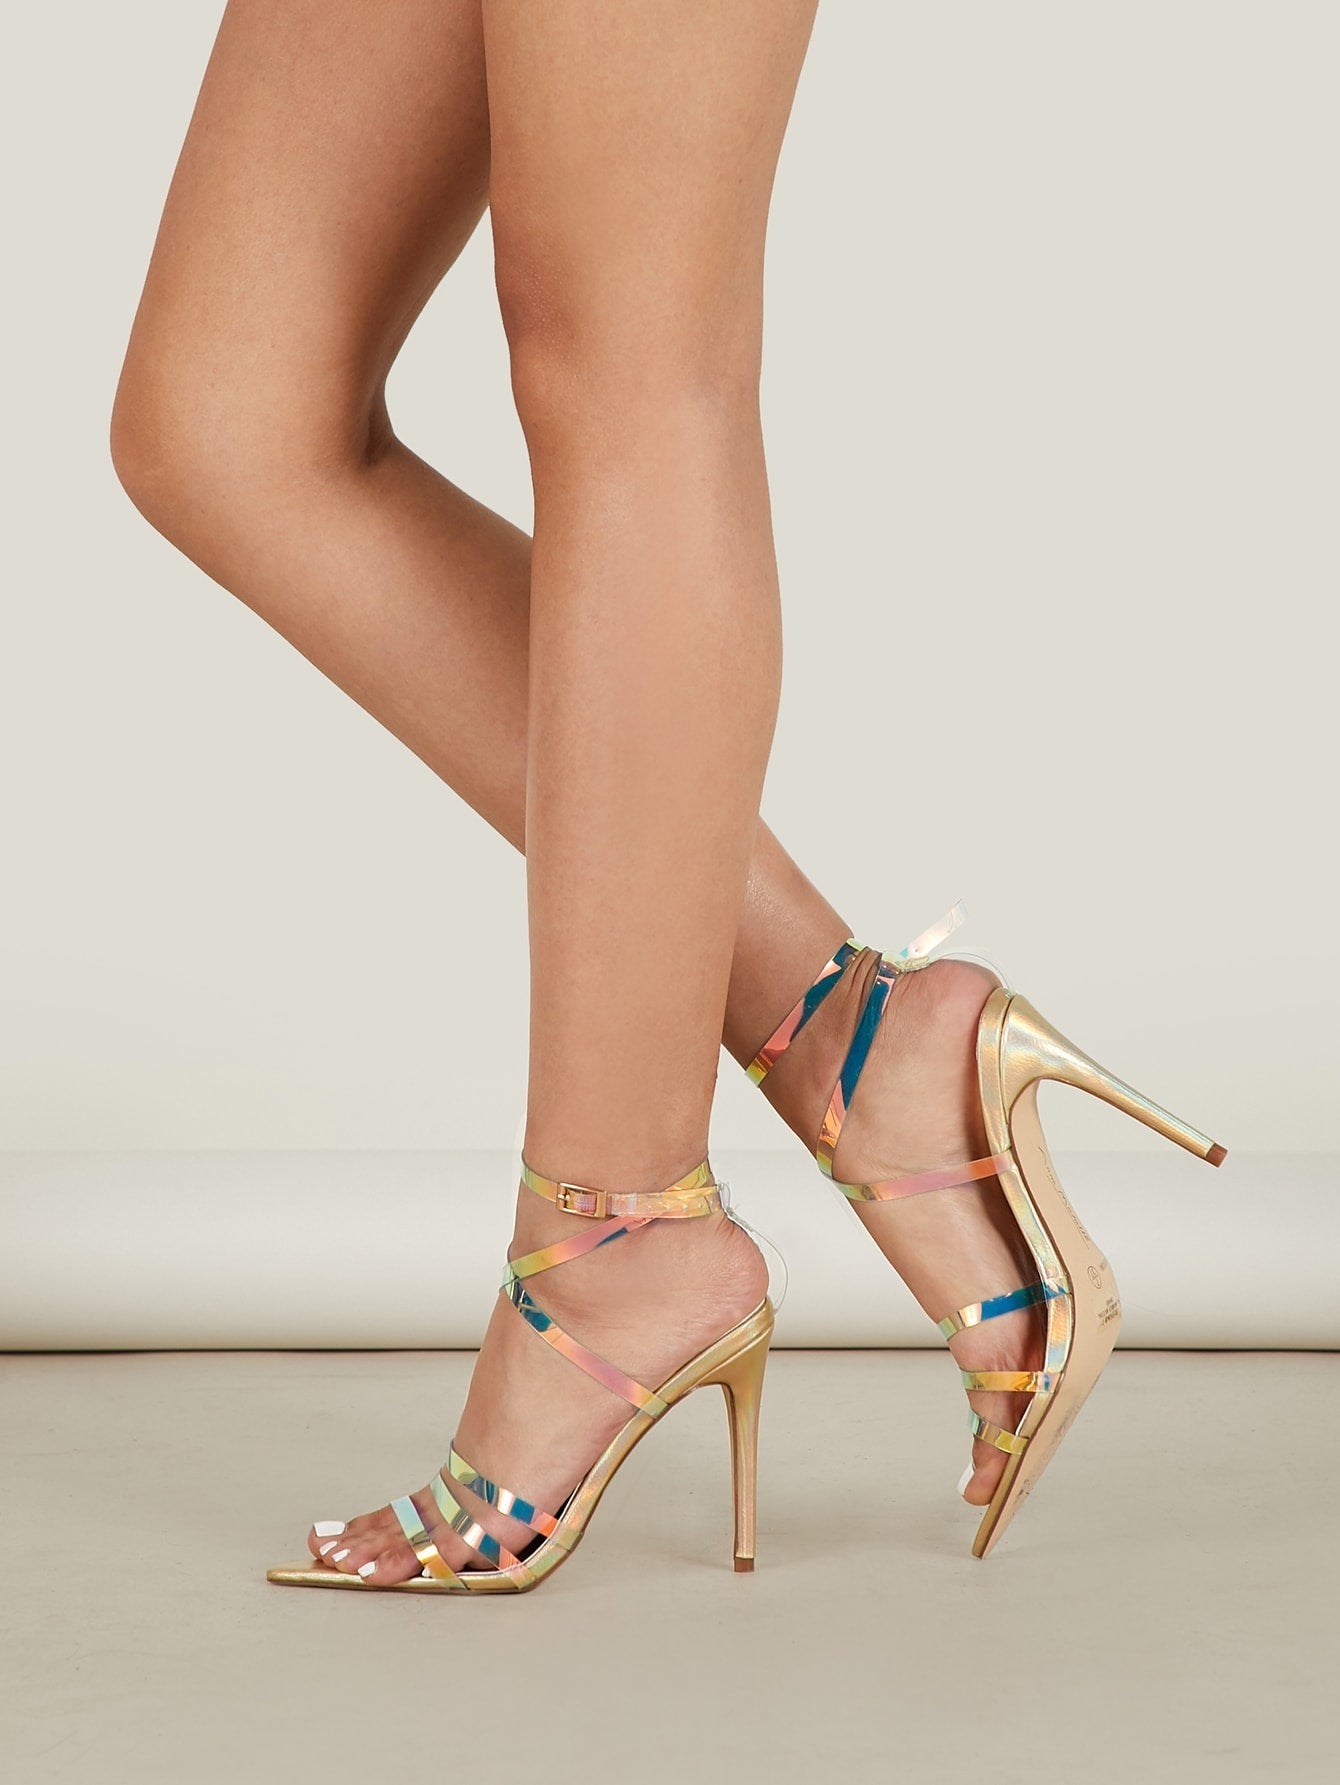 Iridescent Clear Strappy Metallic Heeled Sandals